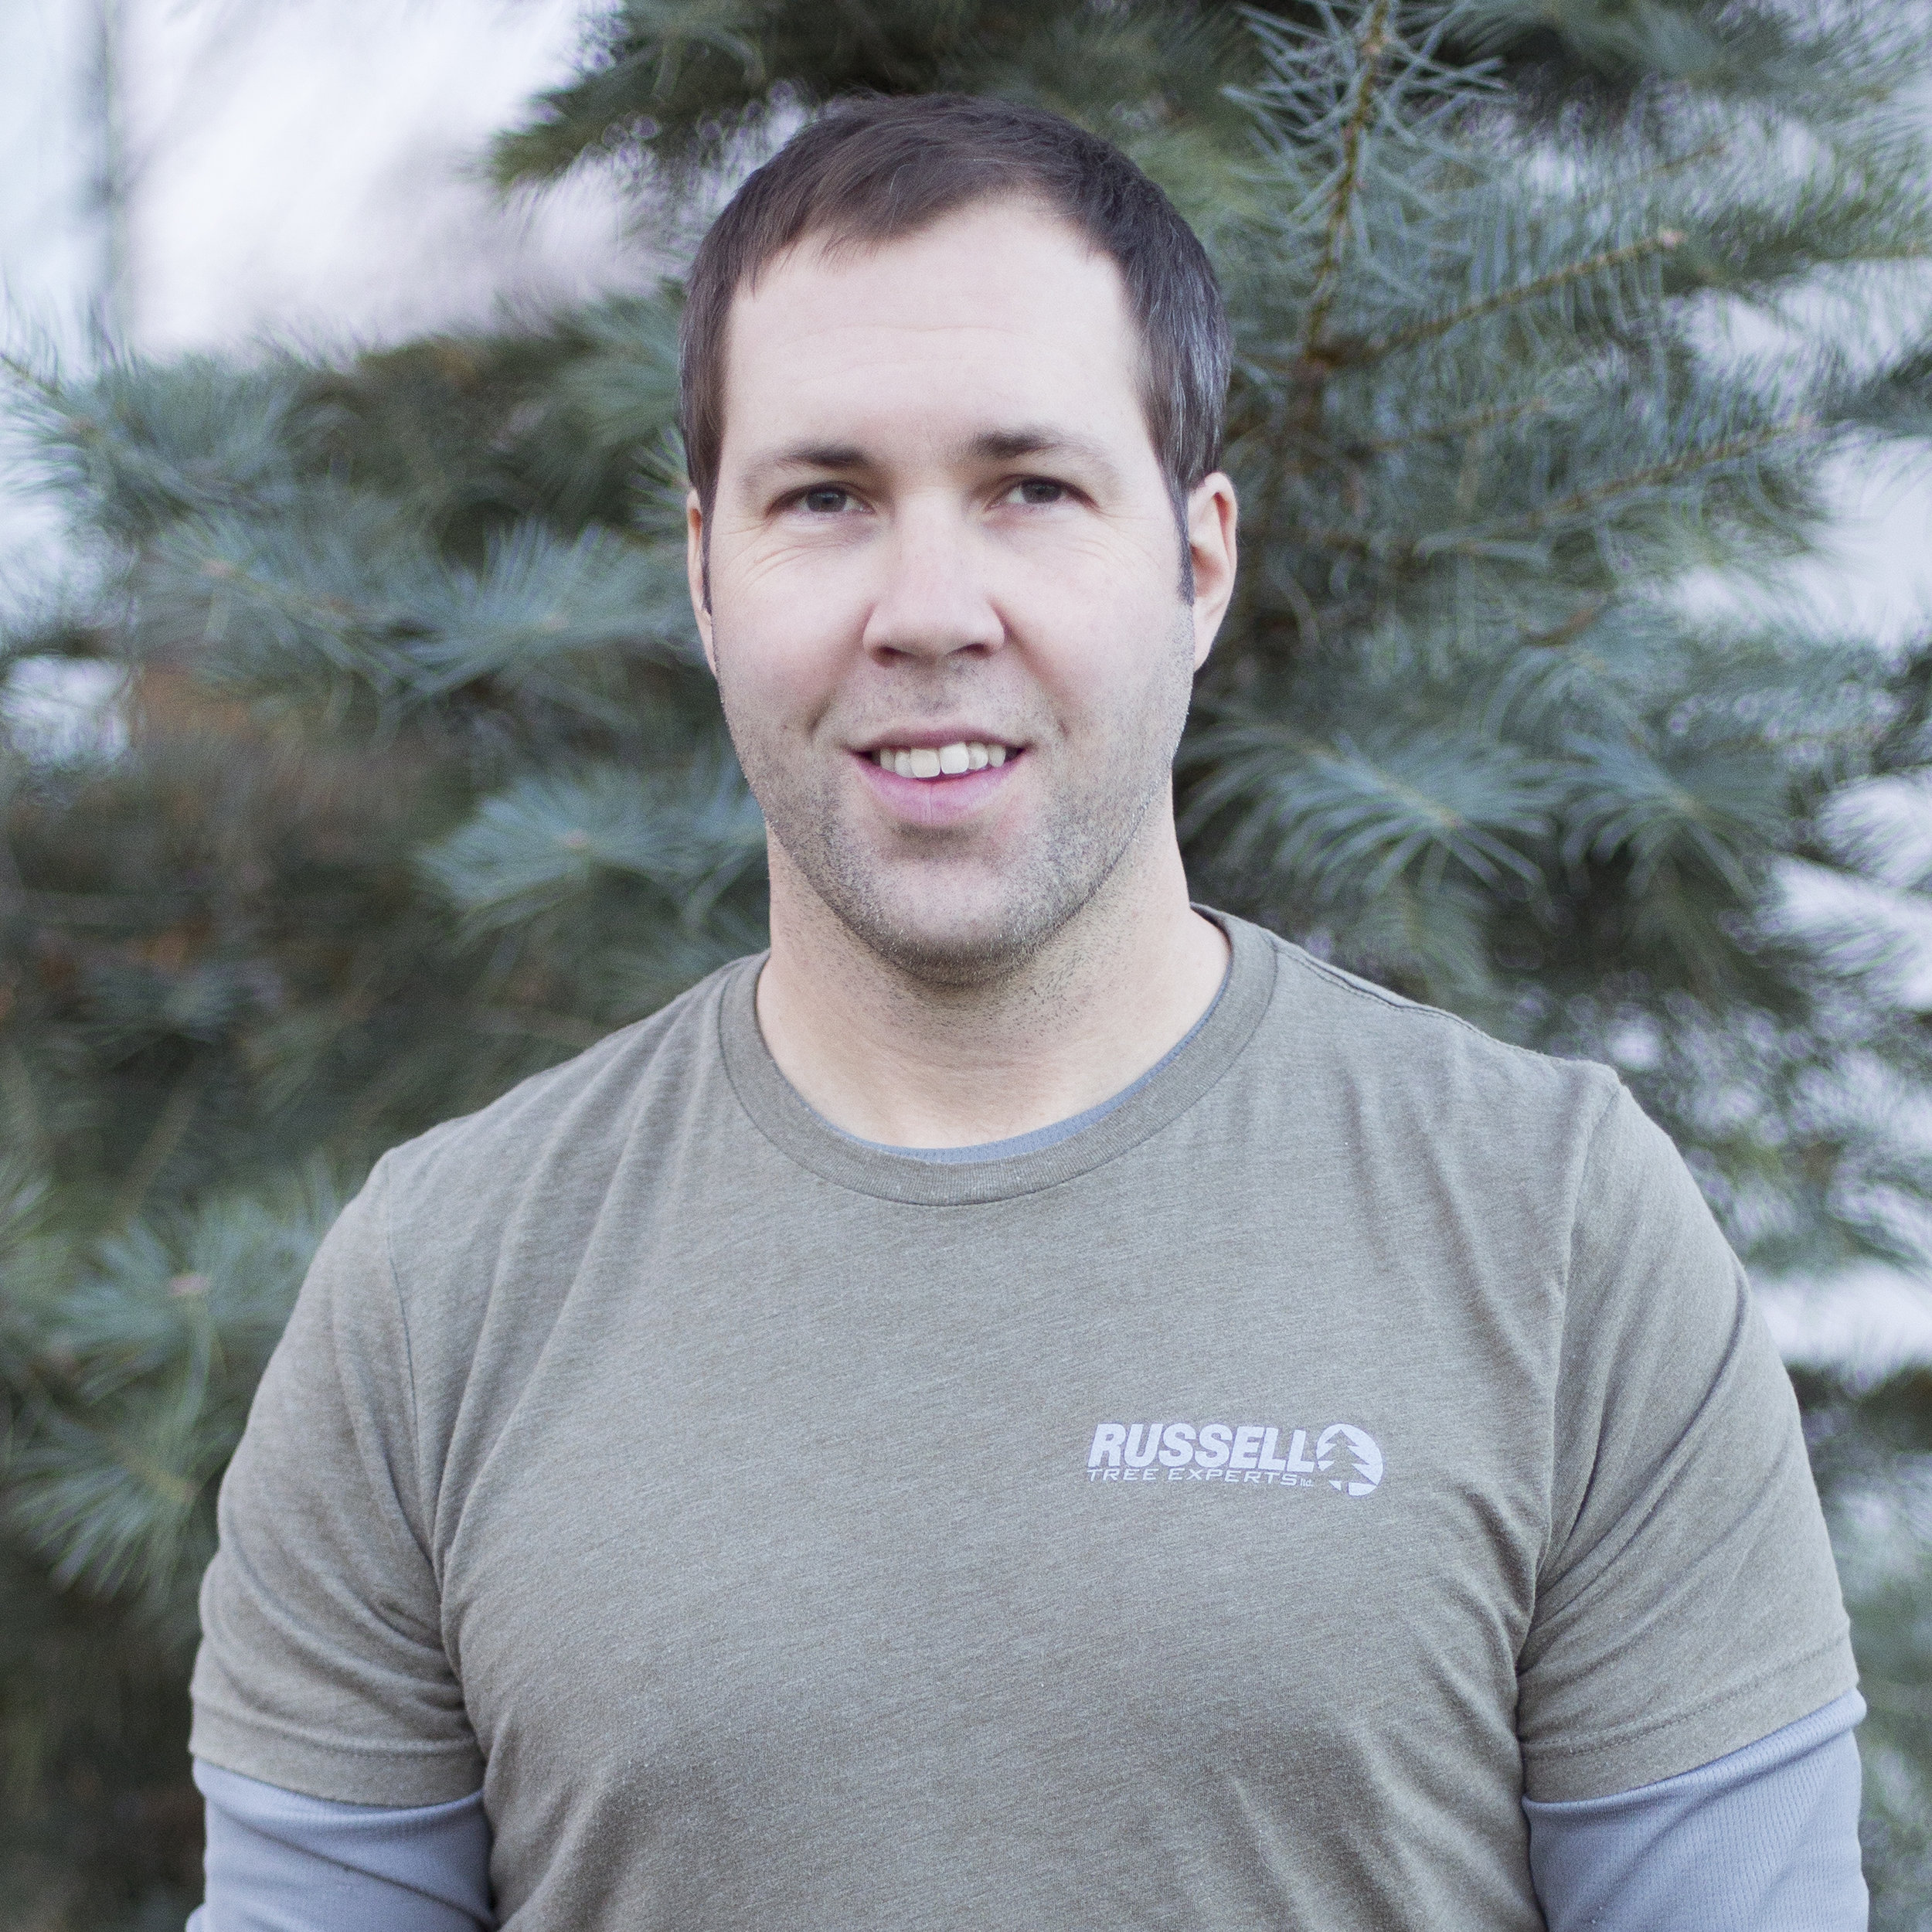 TJ Nagel - PRODUCTION MANAGER (TREE WORK)TJ loves trees. He is an avid gardener and plant collector. TJ graduated from The Ohio State University with a B.S. in Agriculture with a major in Landscape Horticulture and minor in Entomology. TJ is a Certified Arborist and well versed in Plant Pathology. TJ joined Russell Tree Experts in 2012.▶ ISA Certified Arborist® OH-6298A▶ Tree Risk Assessment Qualification▶ EHAP Certified▶ CPR & First Aid▶ B.S. in Landscape Horticulture, Minor in Entomology, Ohio State University